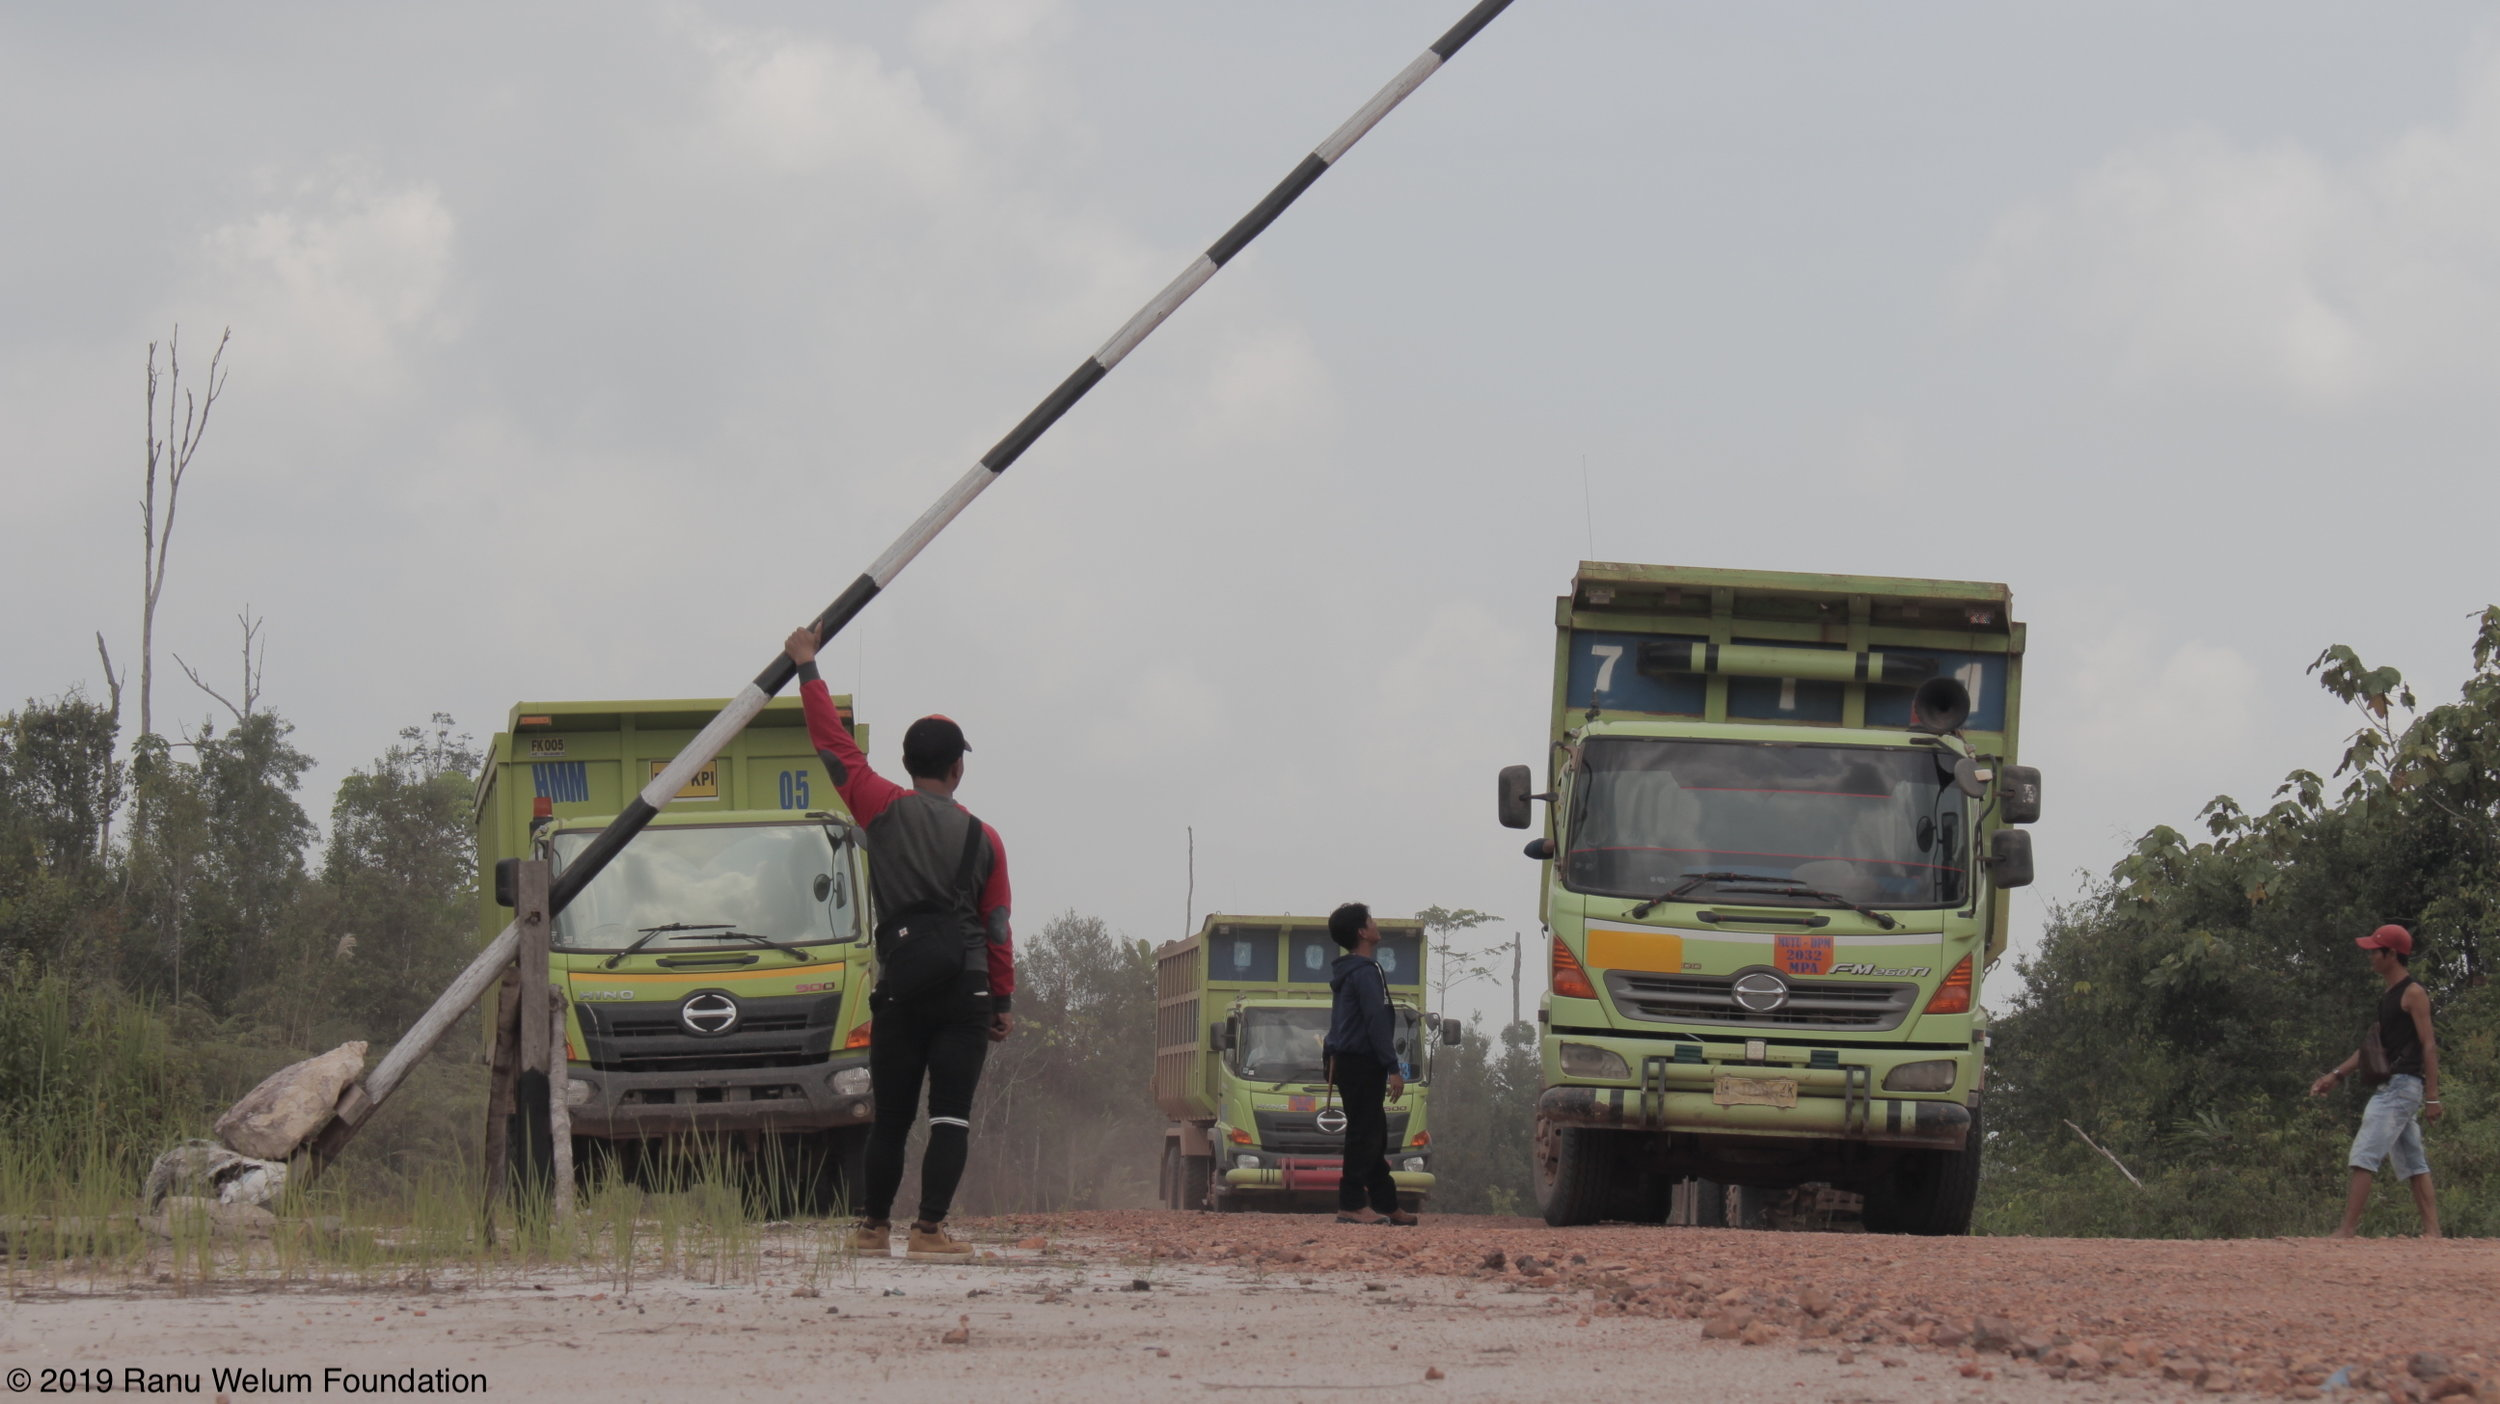 Indigenous Dayak community stopping PT Palopo Indah Raya's trucks | Photo courtesy of Ranu Welum Media